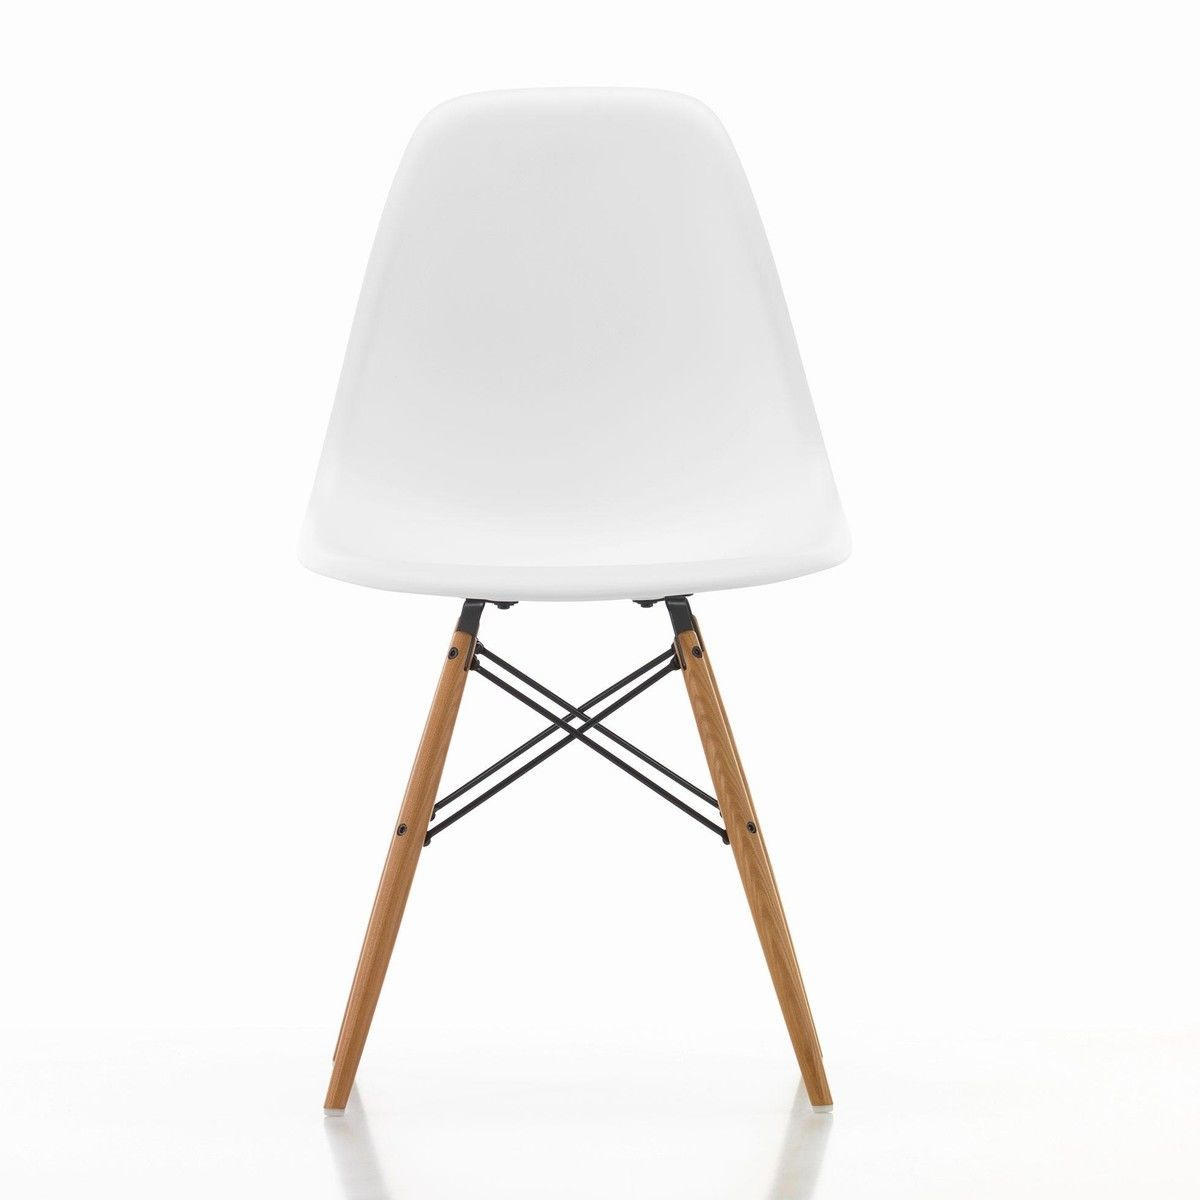 Chaise Dsw Rembourree Eames Plastic Chair Dsw Vitra Eames Plastic Chairs In The